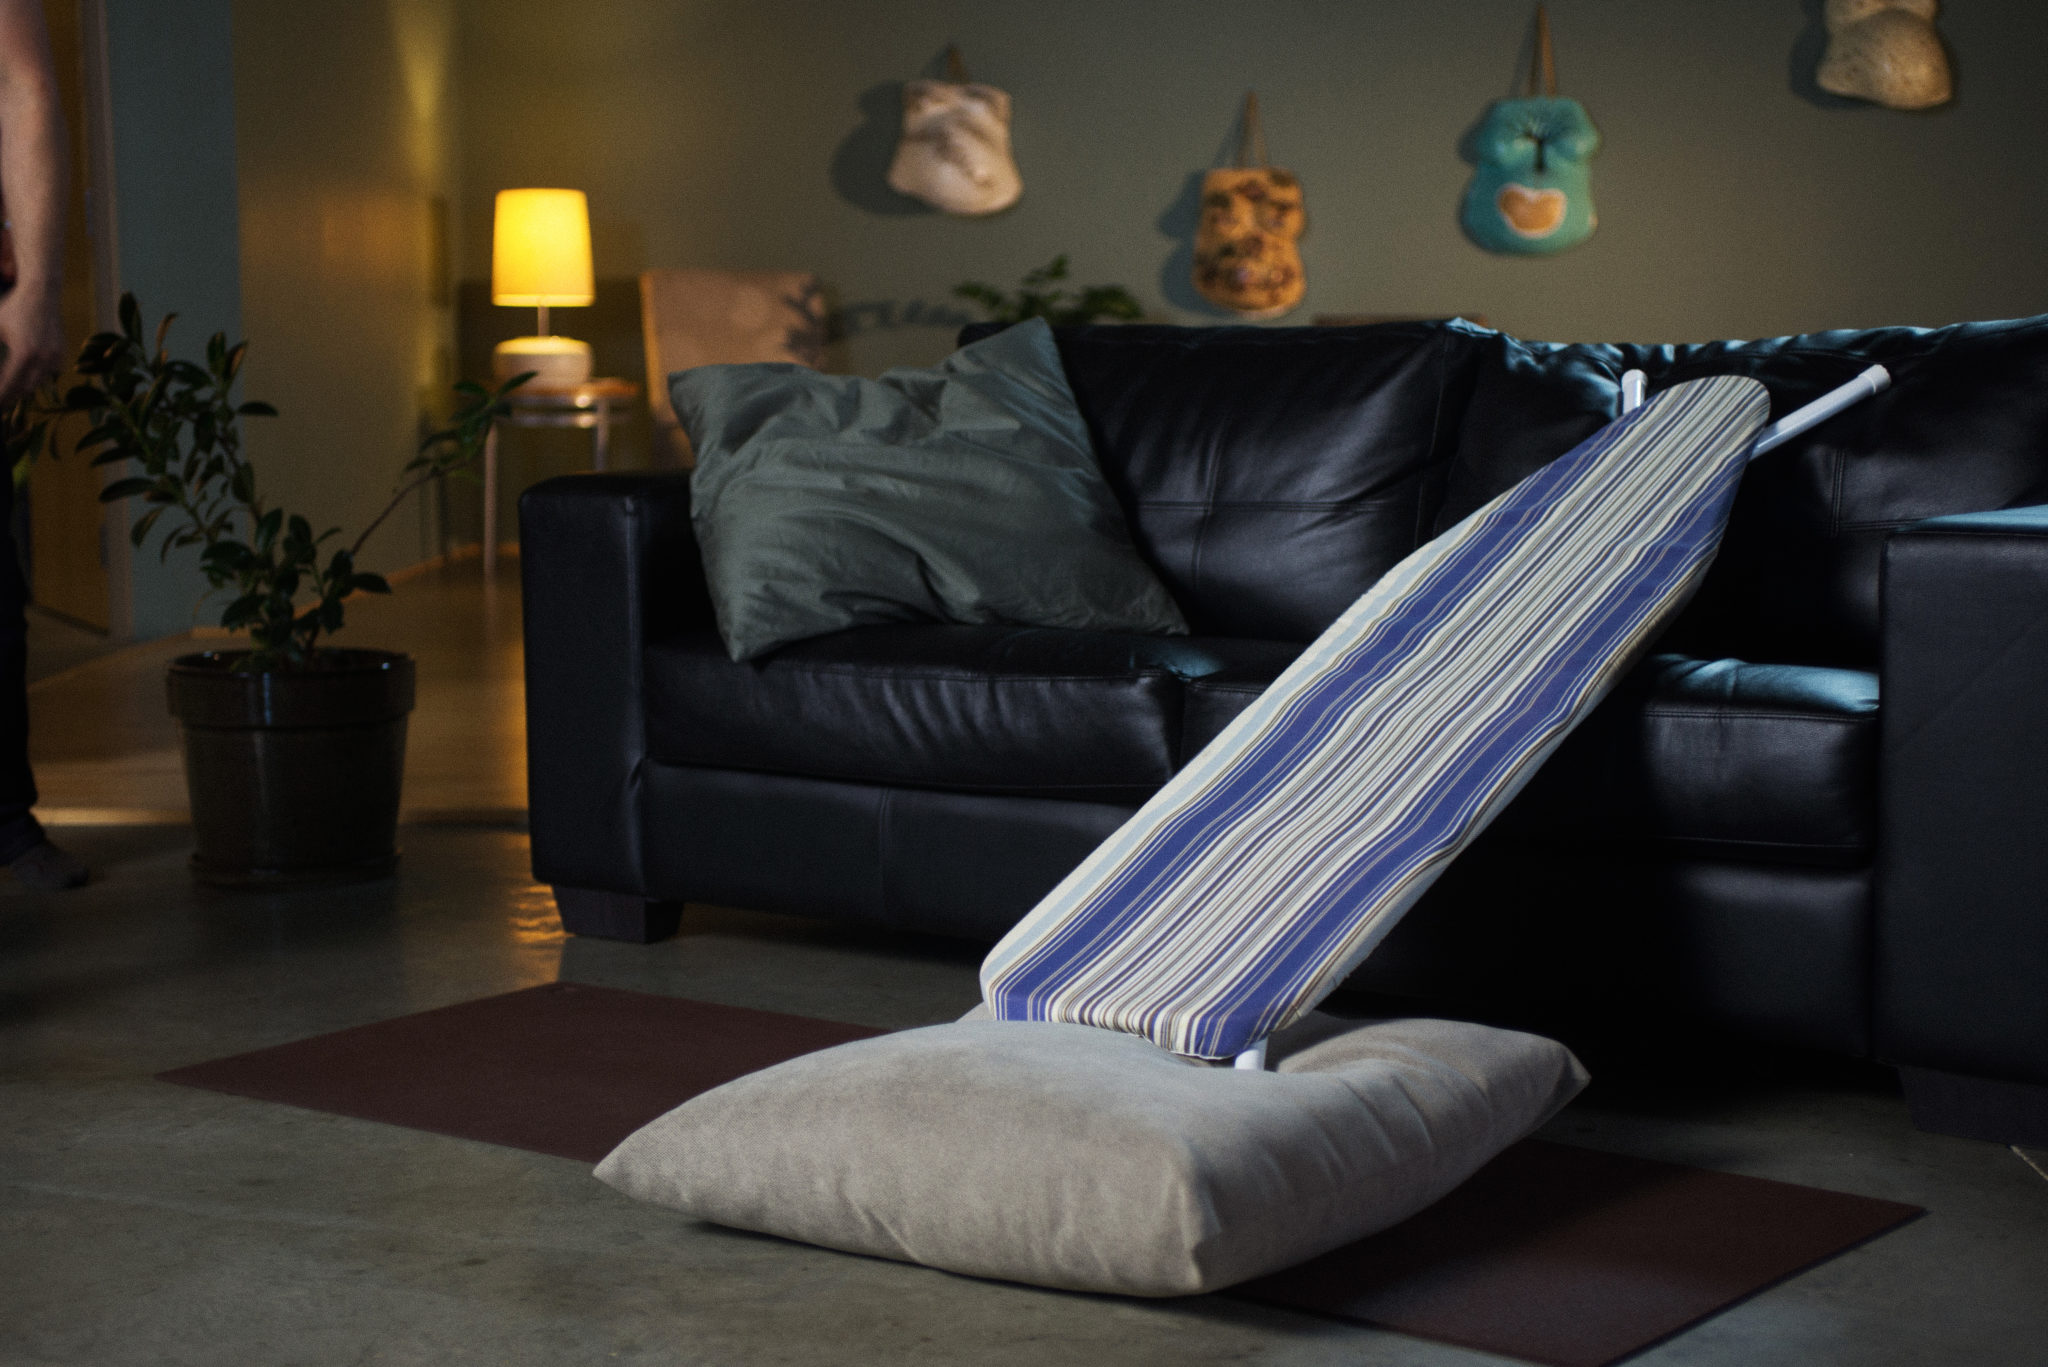 Secure a board or ironing board with pillows and lean it on the couch for the angle best to back s breech baby out of the pelvis and help baby flex the head as baby is directed onto the inner fundus of the uterus.